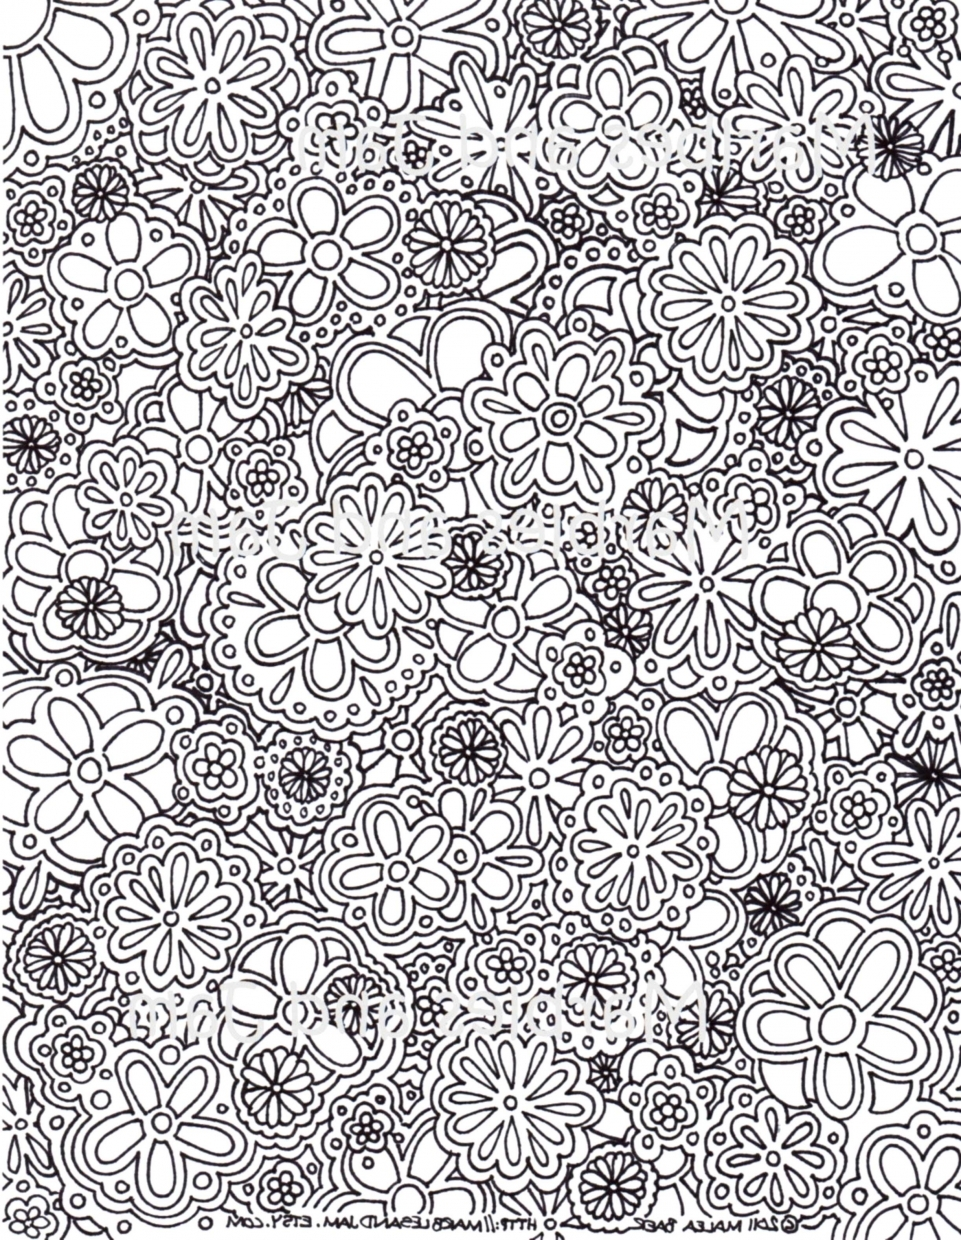 Get This Free Complex Coloring Pages To Print For Adults S8CJE